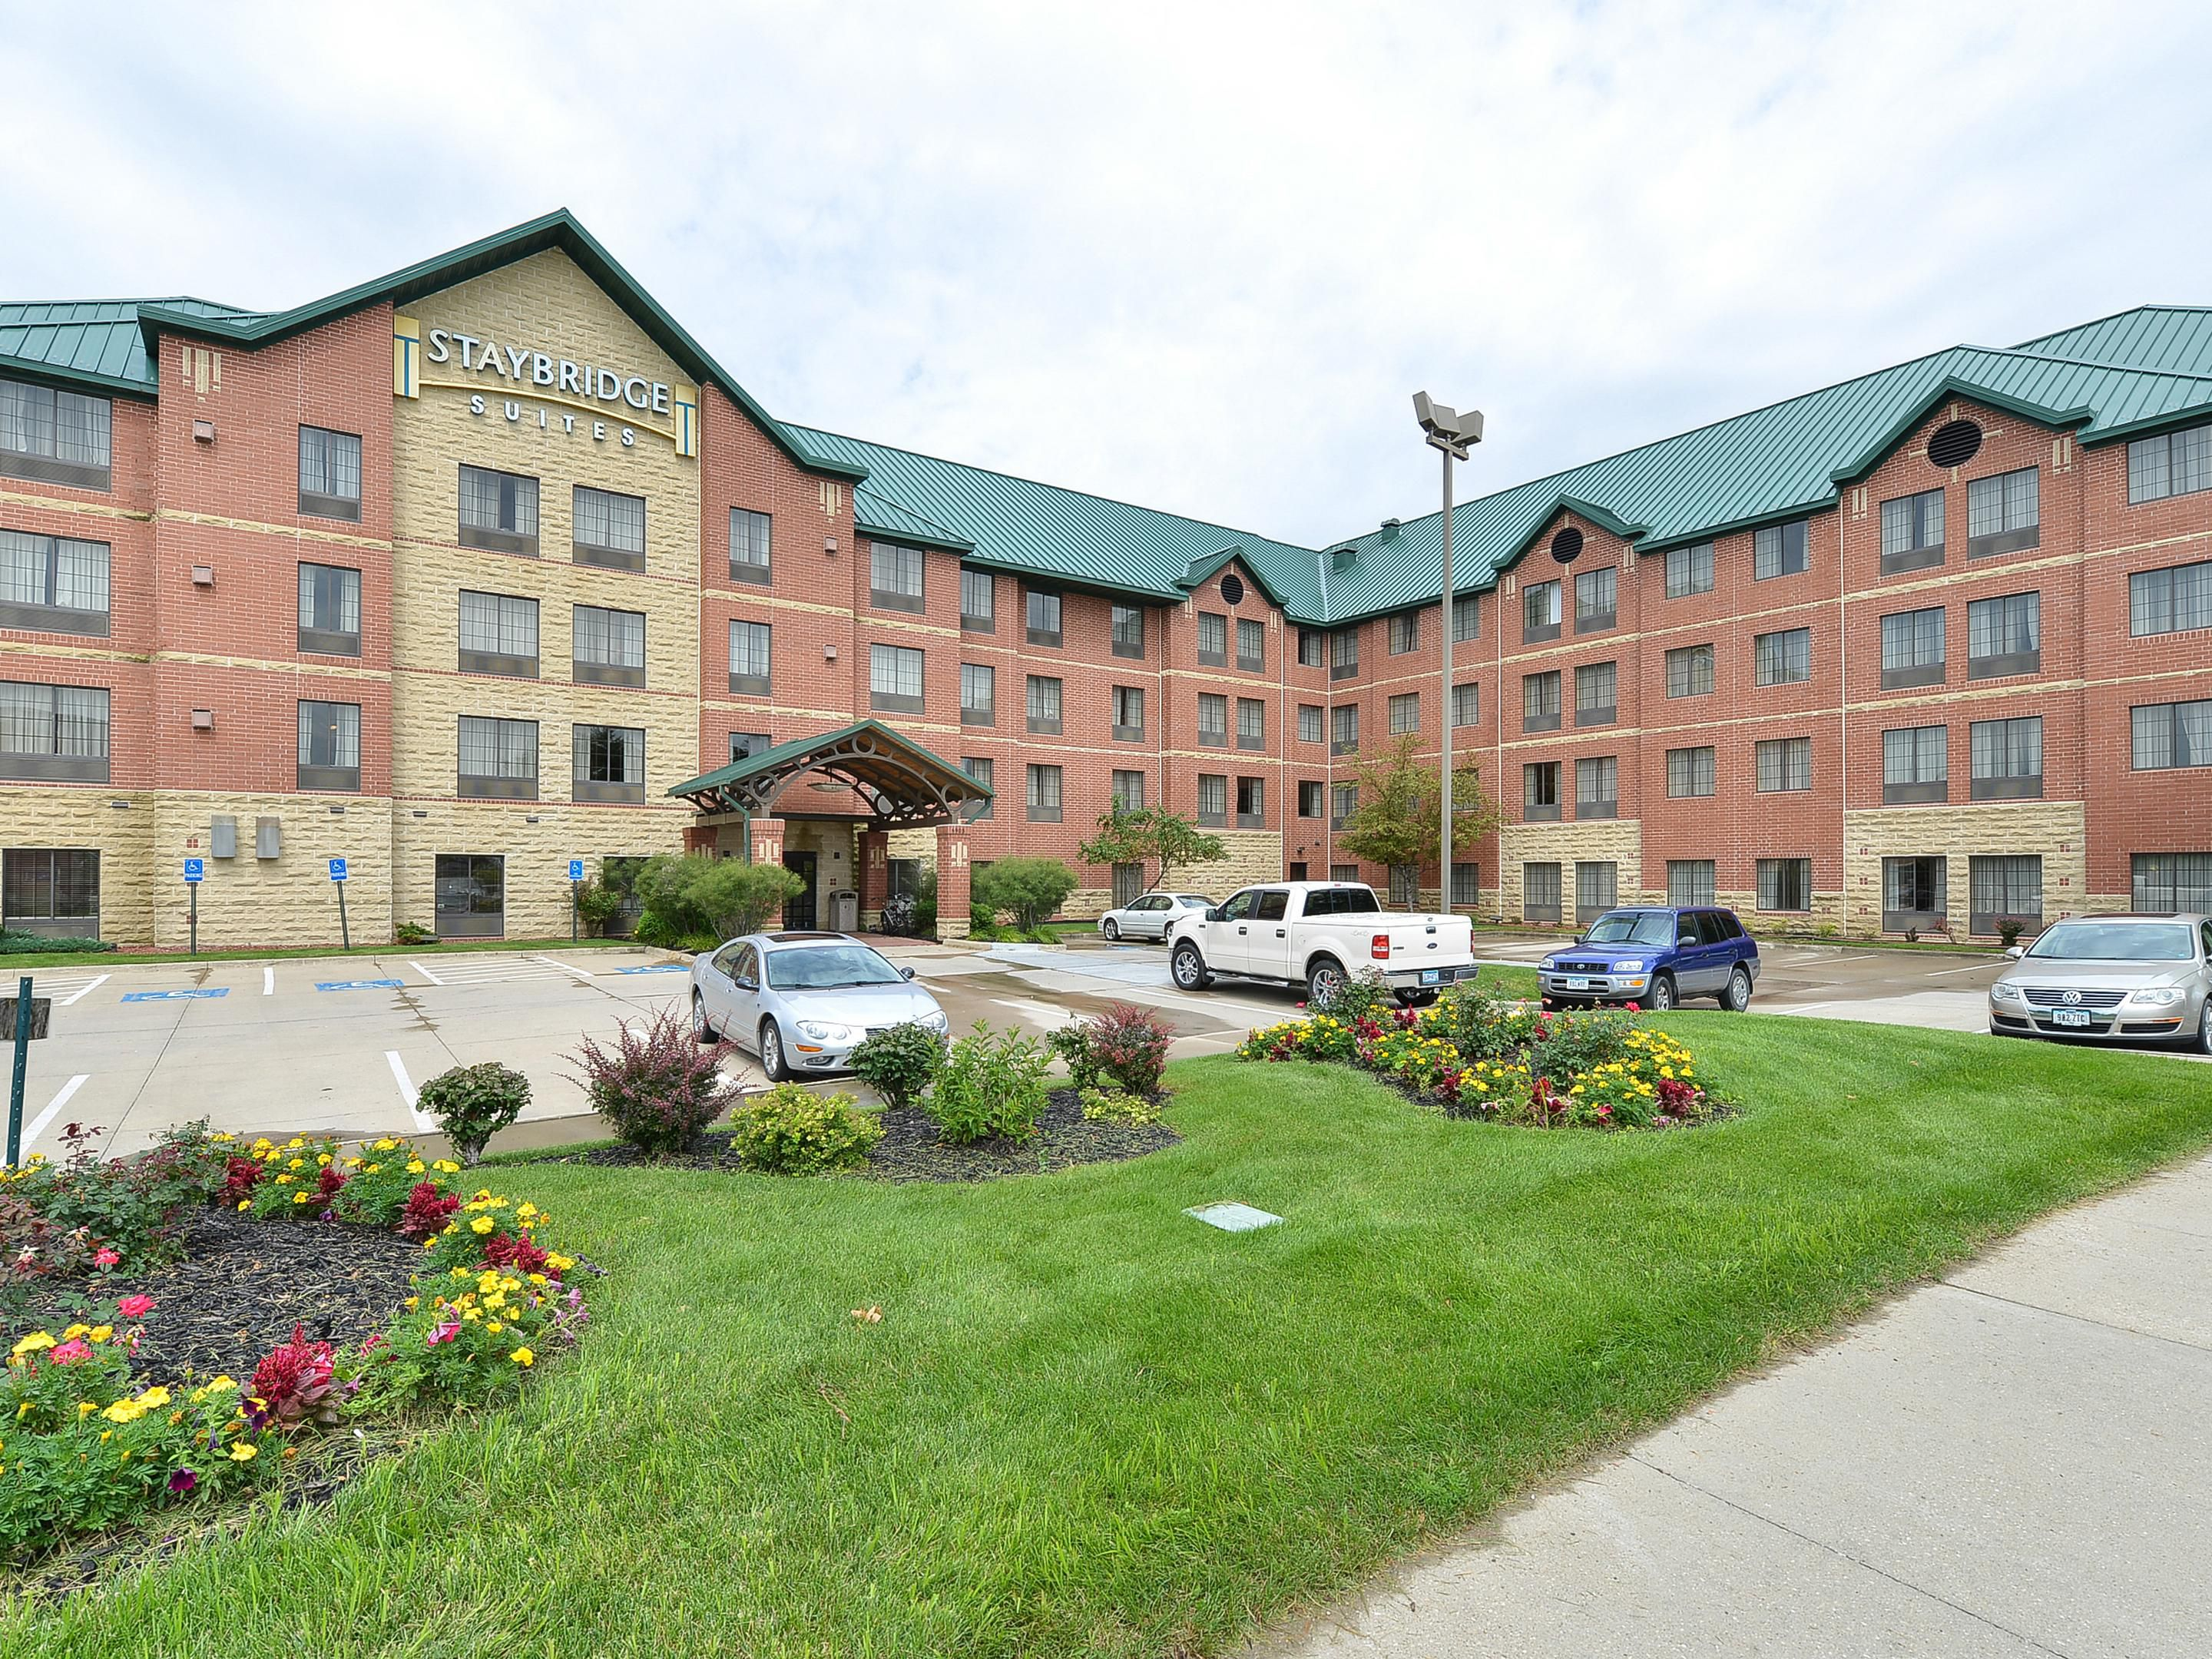 Staybridge Suites West Des Moines Extended Stay Hotel In West Des